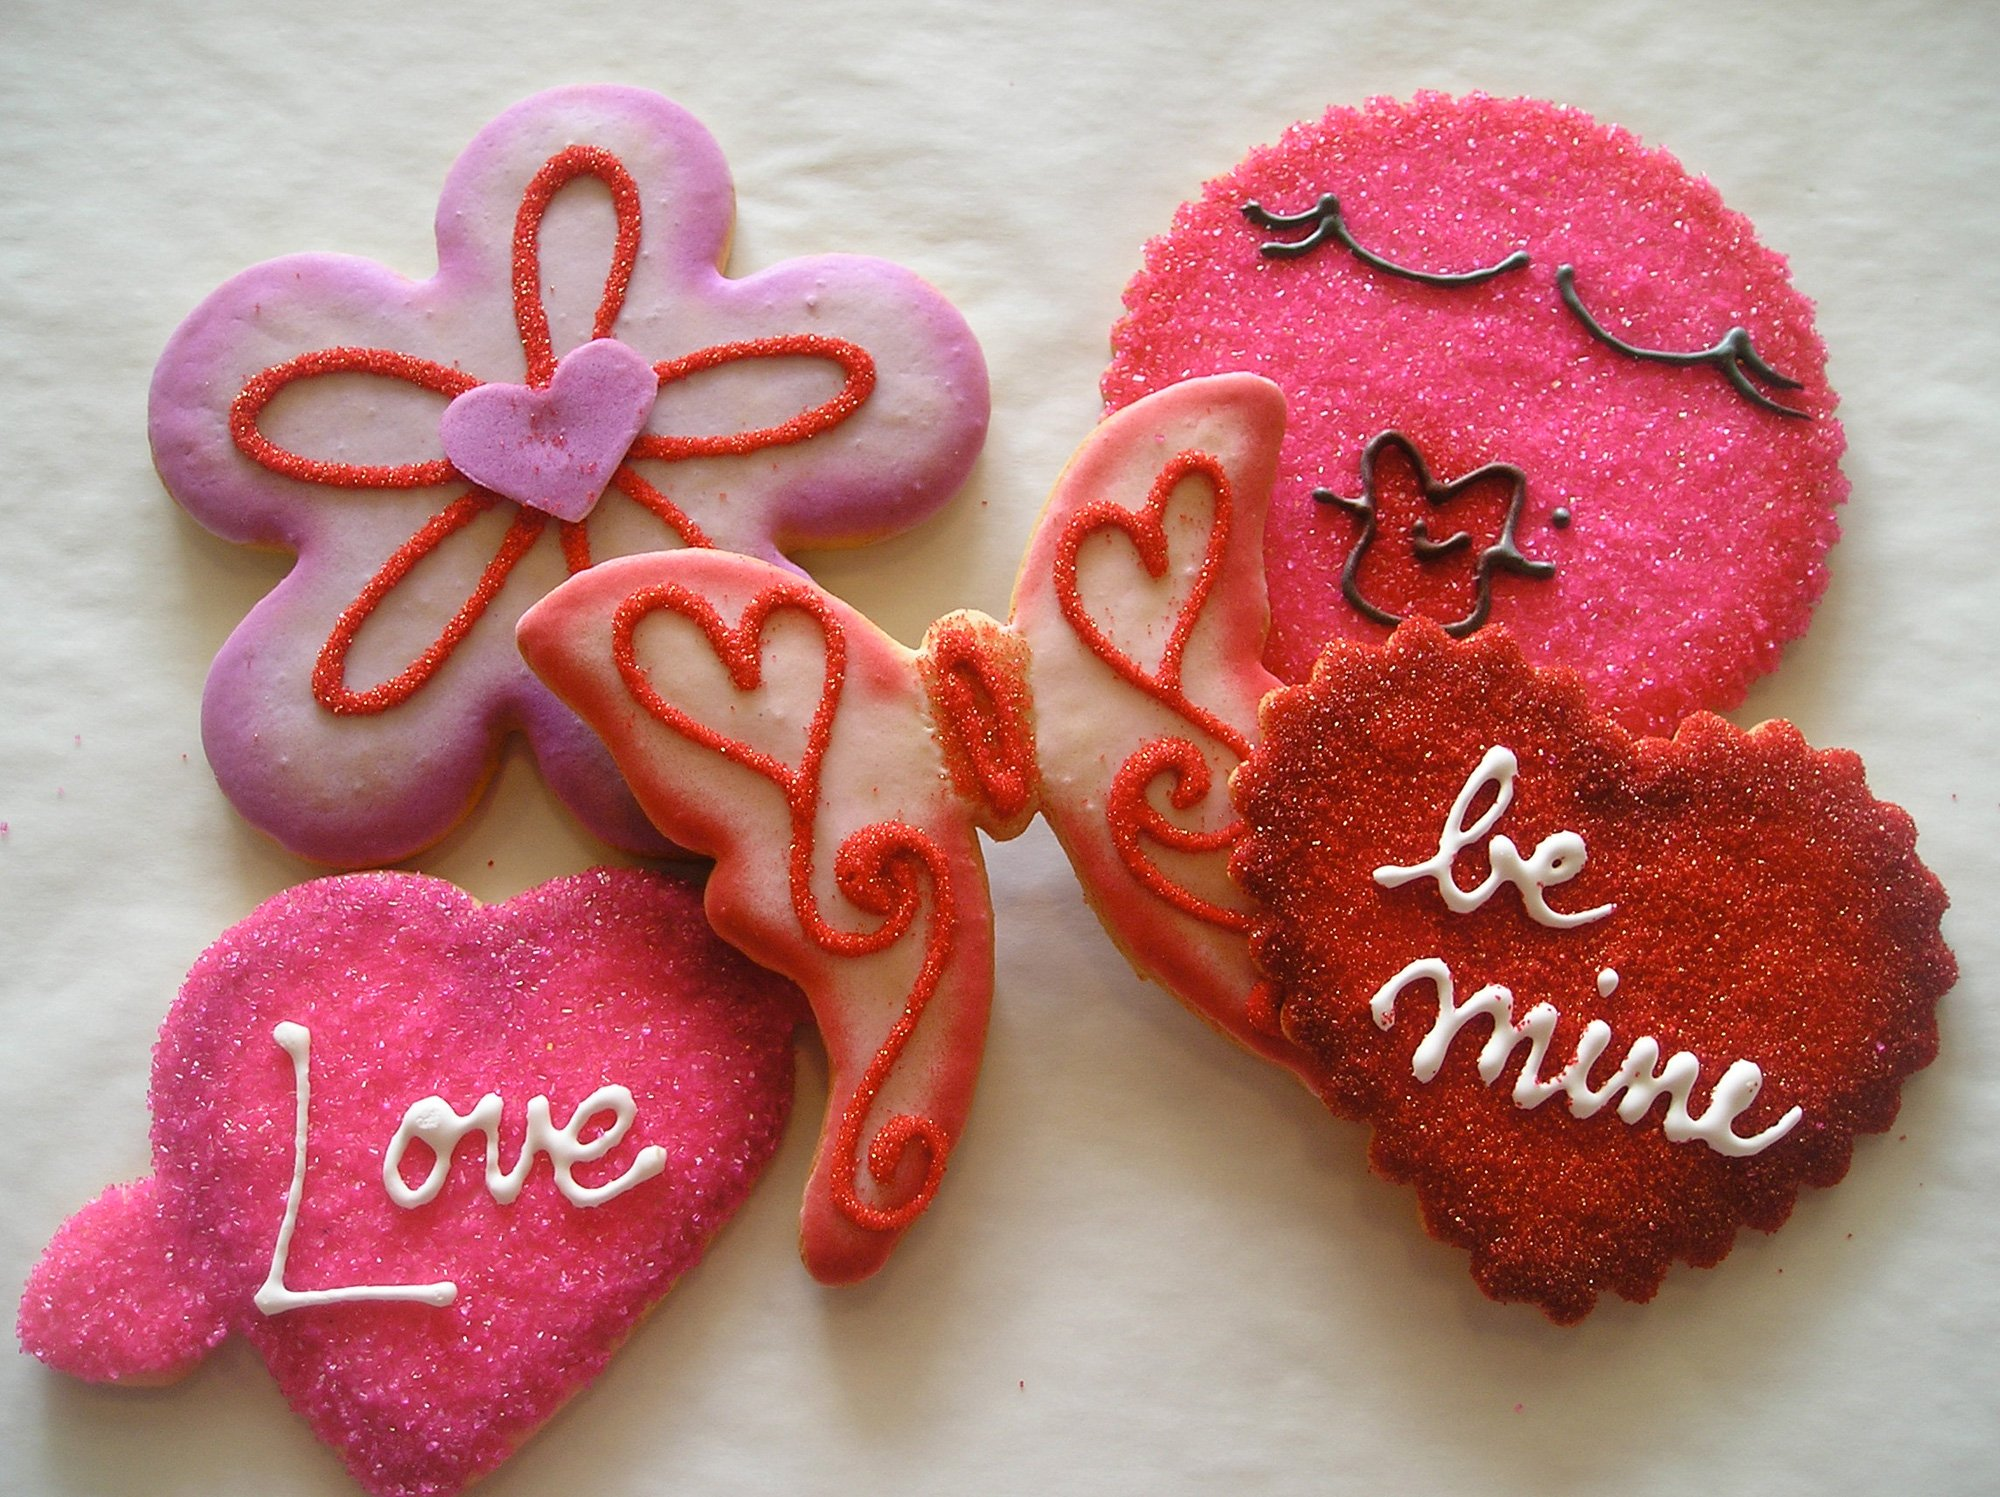 Josef's Hand-Decorated Valentine Cookies